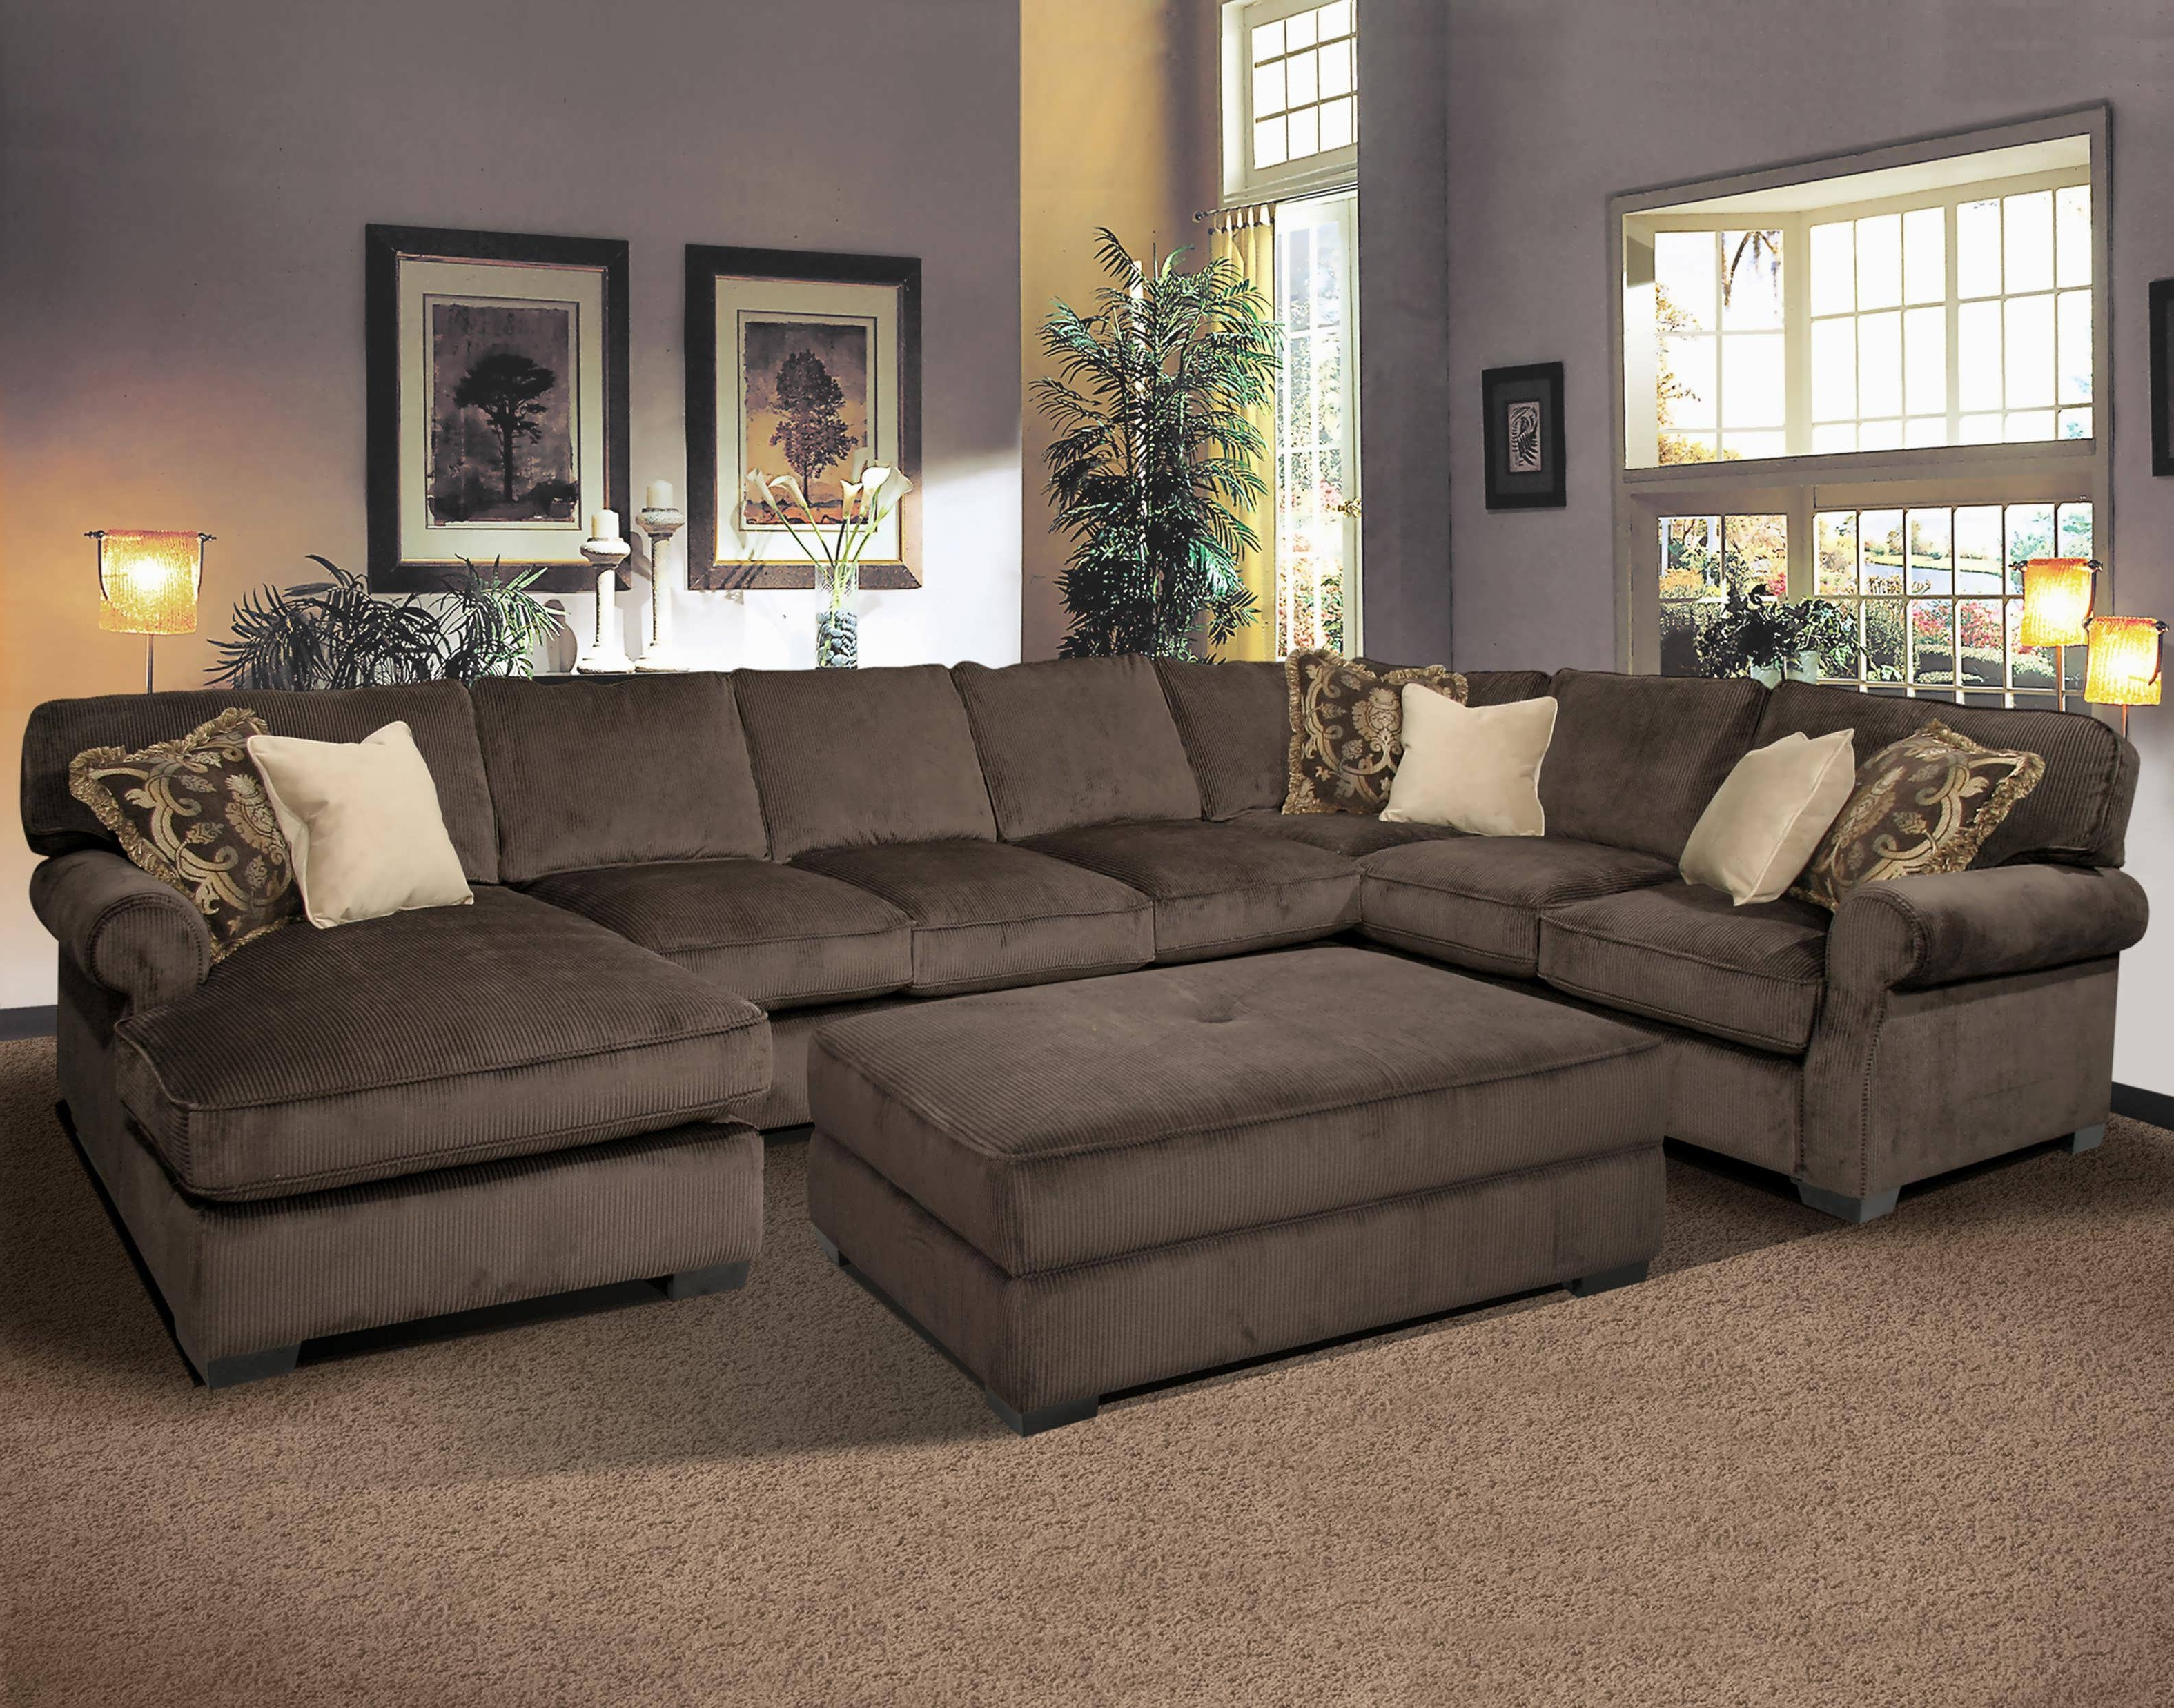 Sofa : L Sectional Couch Extra Large Sofa Large Sectional Couch Regarding Well Known Oversized Sectionals With Chaise (View 7 of 15)